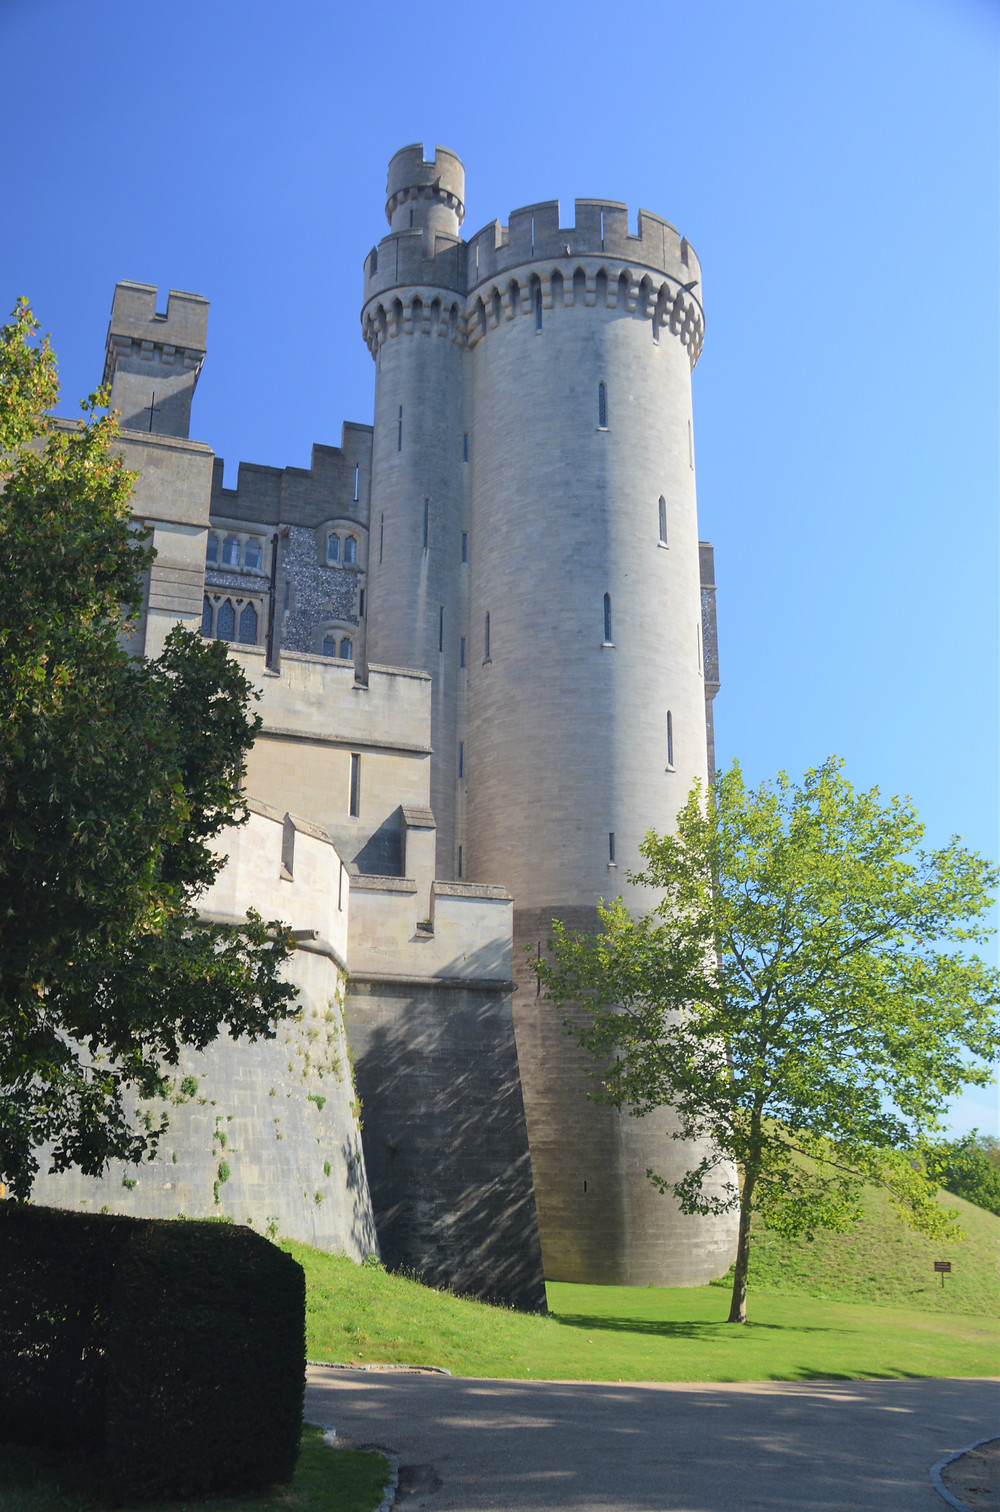 Imposing Arundel Castle towers and walls. The castle has ties to the Howard Family and Tudor politics